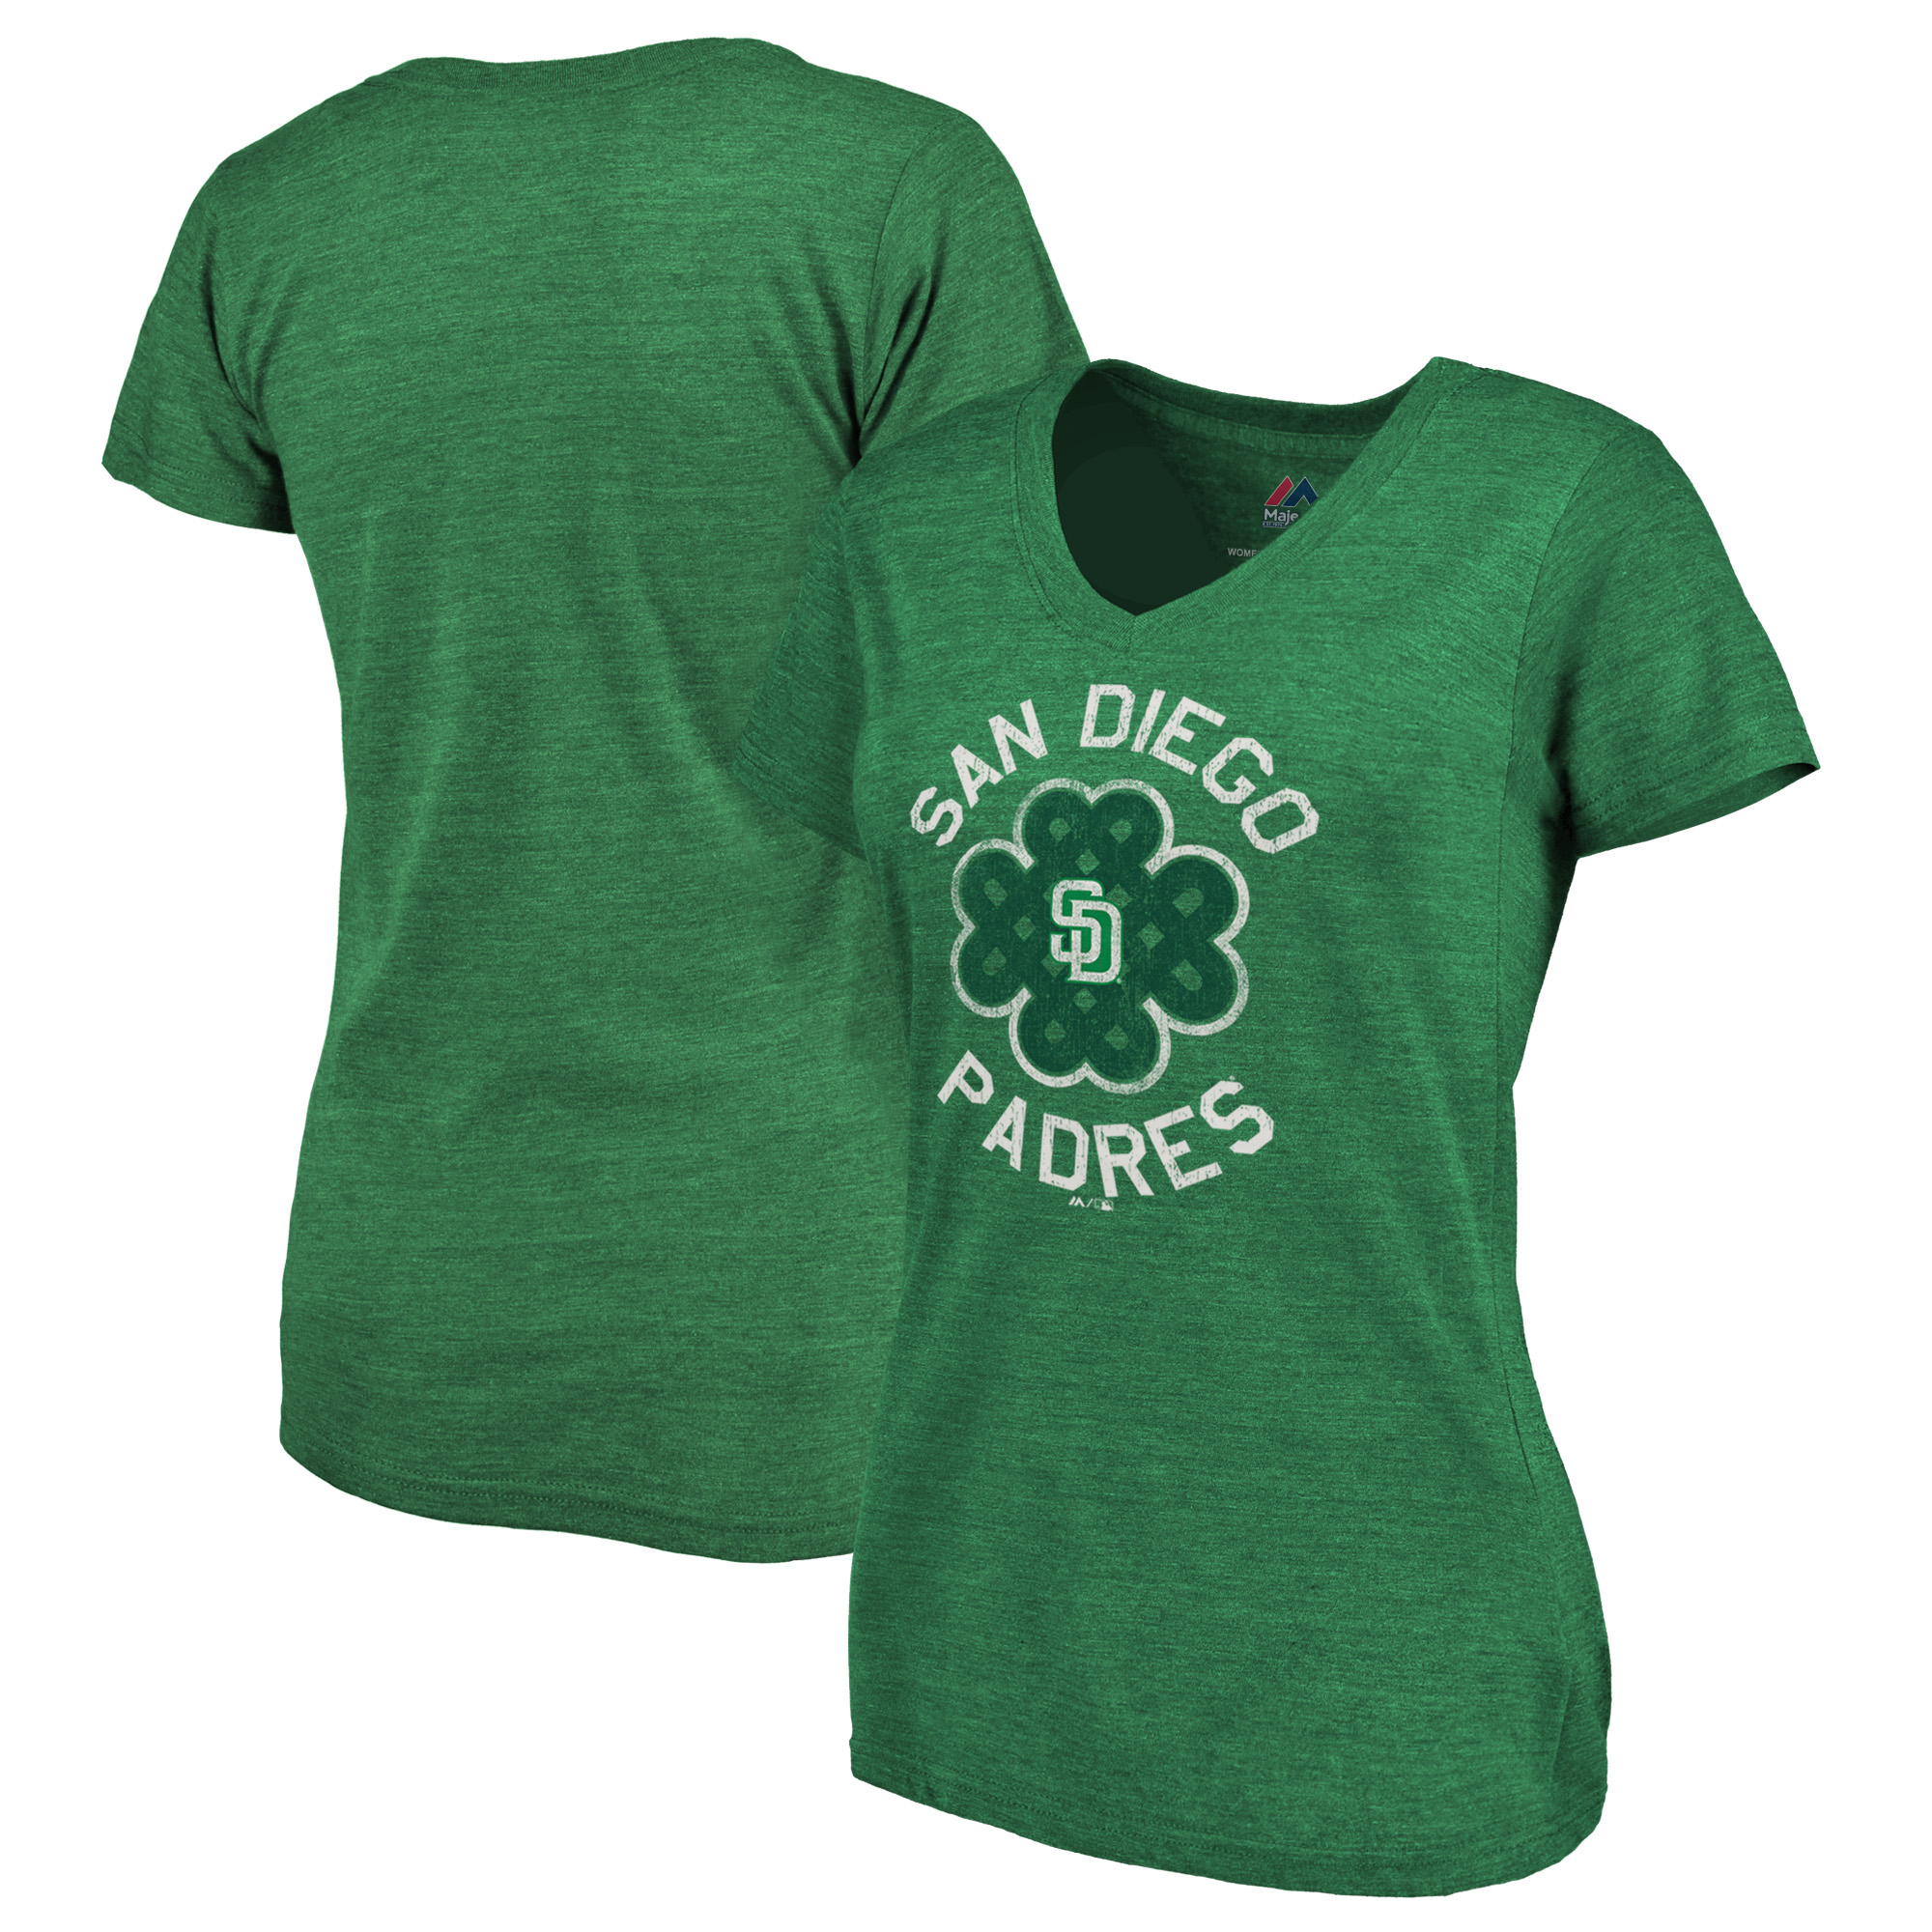 San Diego Padres Majestic Women's Luck Tradition Tri-Blend V-Neck T-Shirt - Green